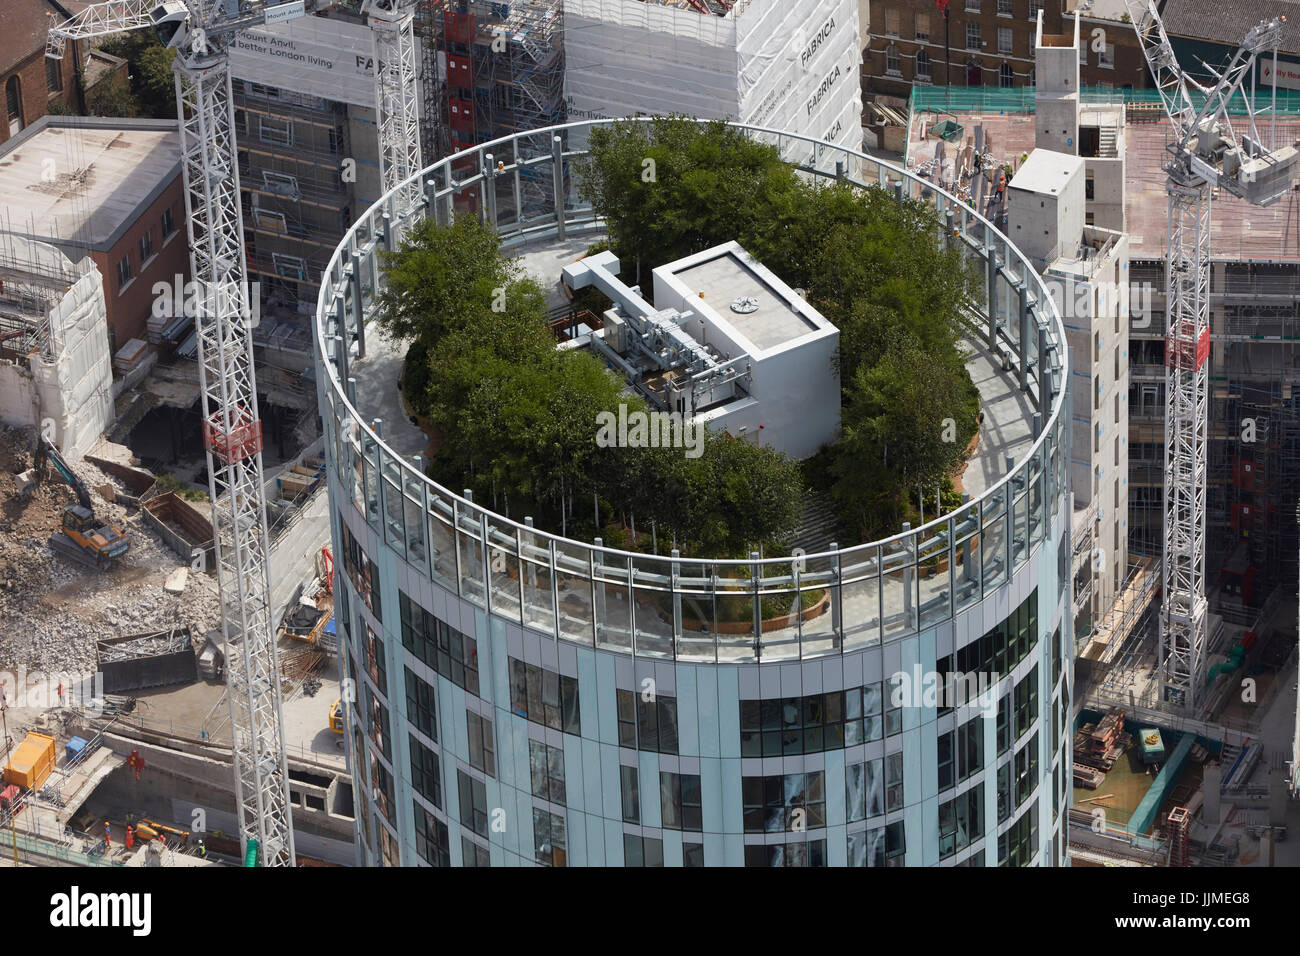 A close-up aerial view of the roof of Vauxhall Sky Gardens, a residential development in Nine Elms, Battersea. - Stock Image